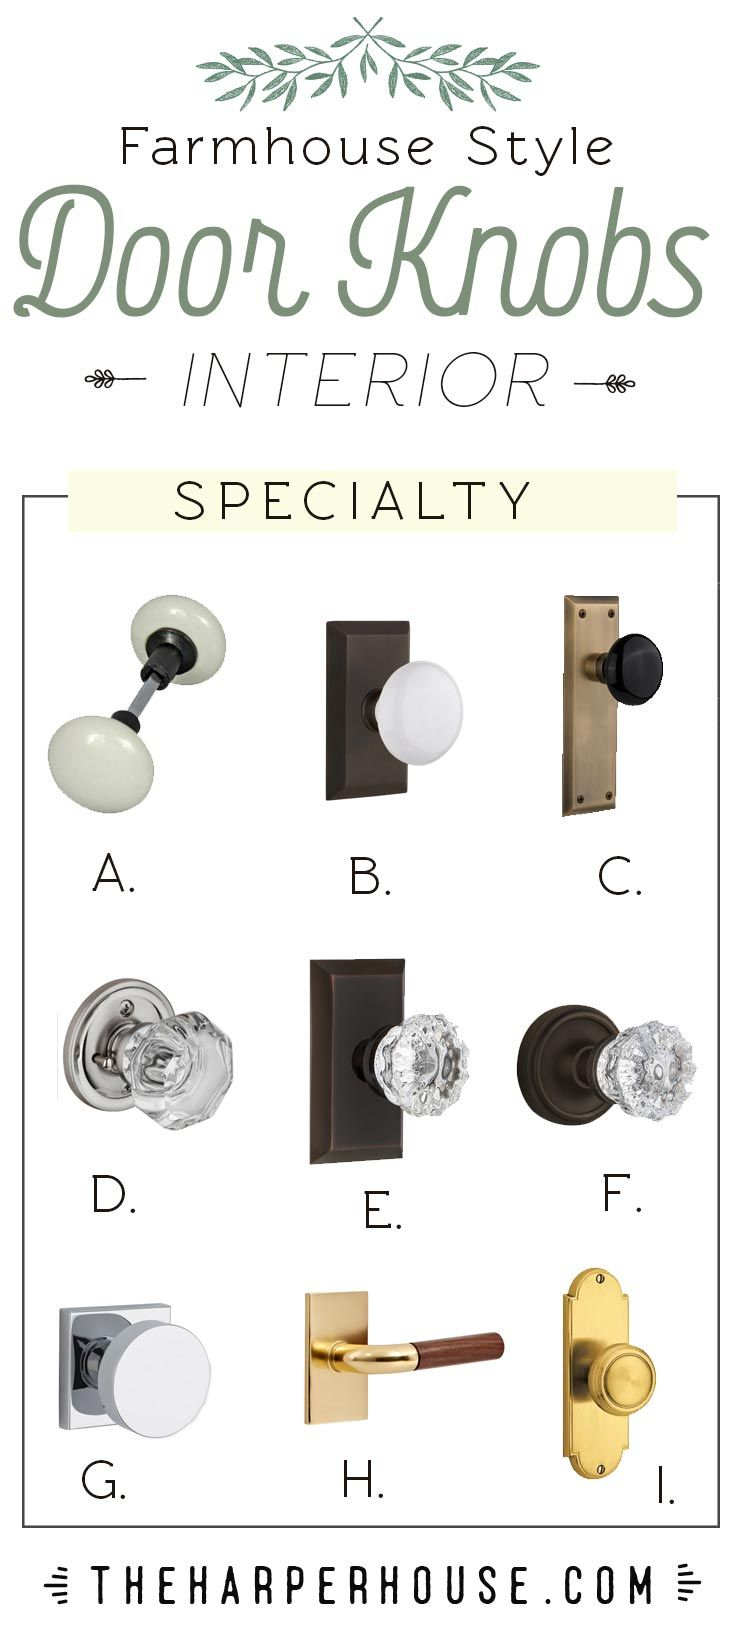 Roundup of glass crystal porcelain and brass door knobs to help you get the modern farmhouse look in your home